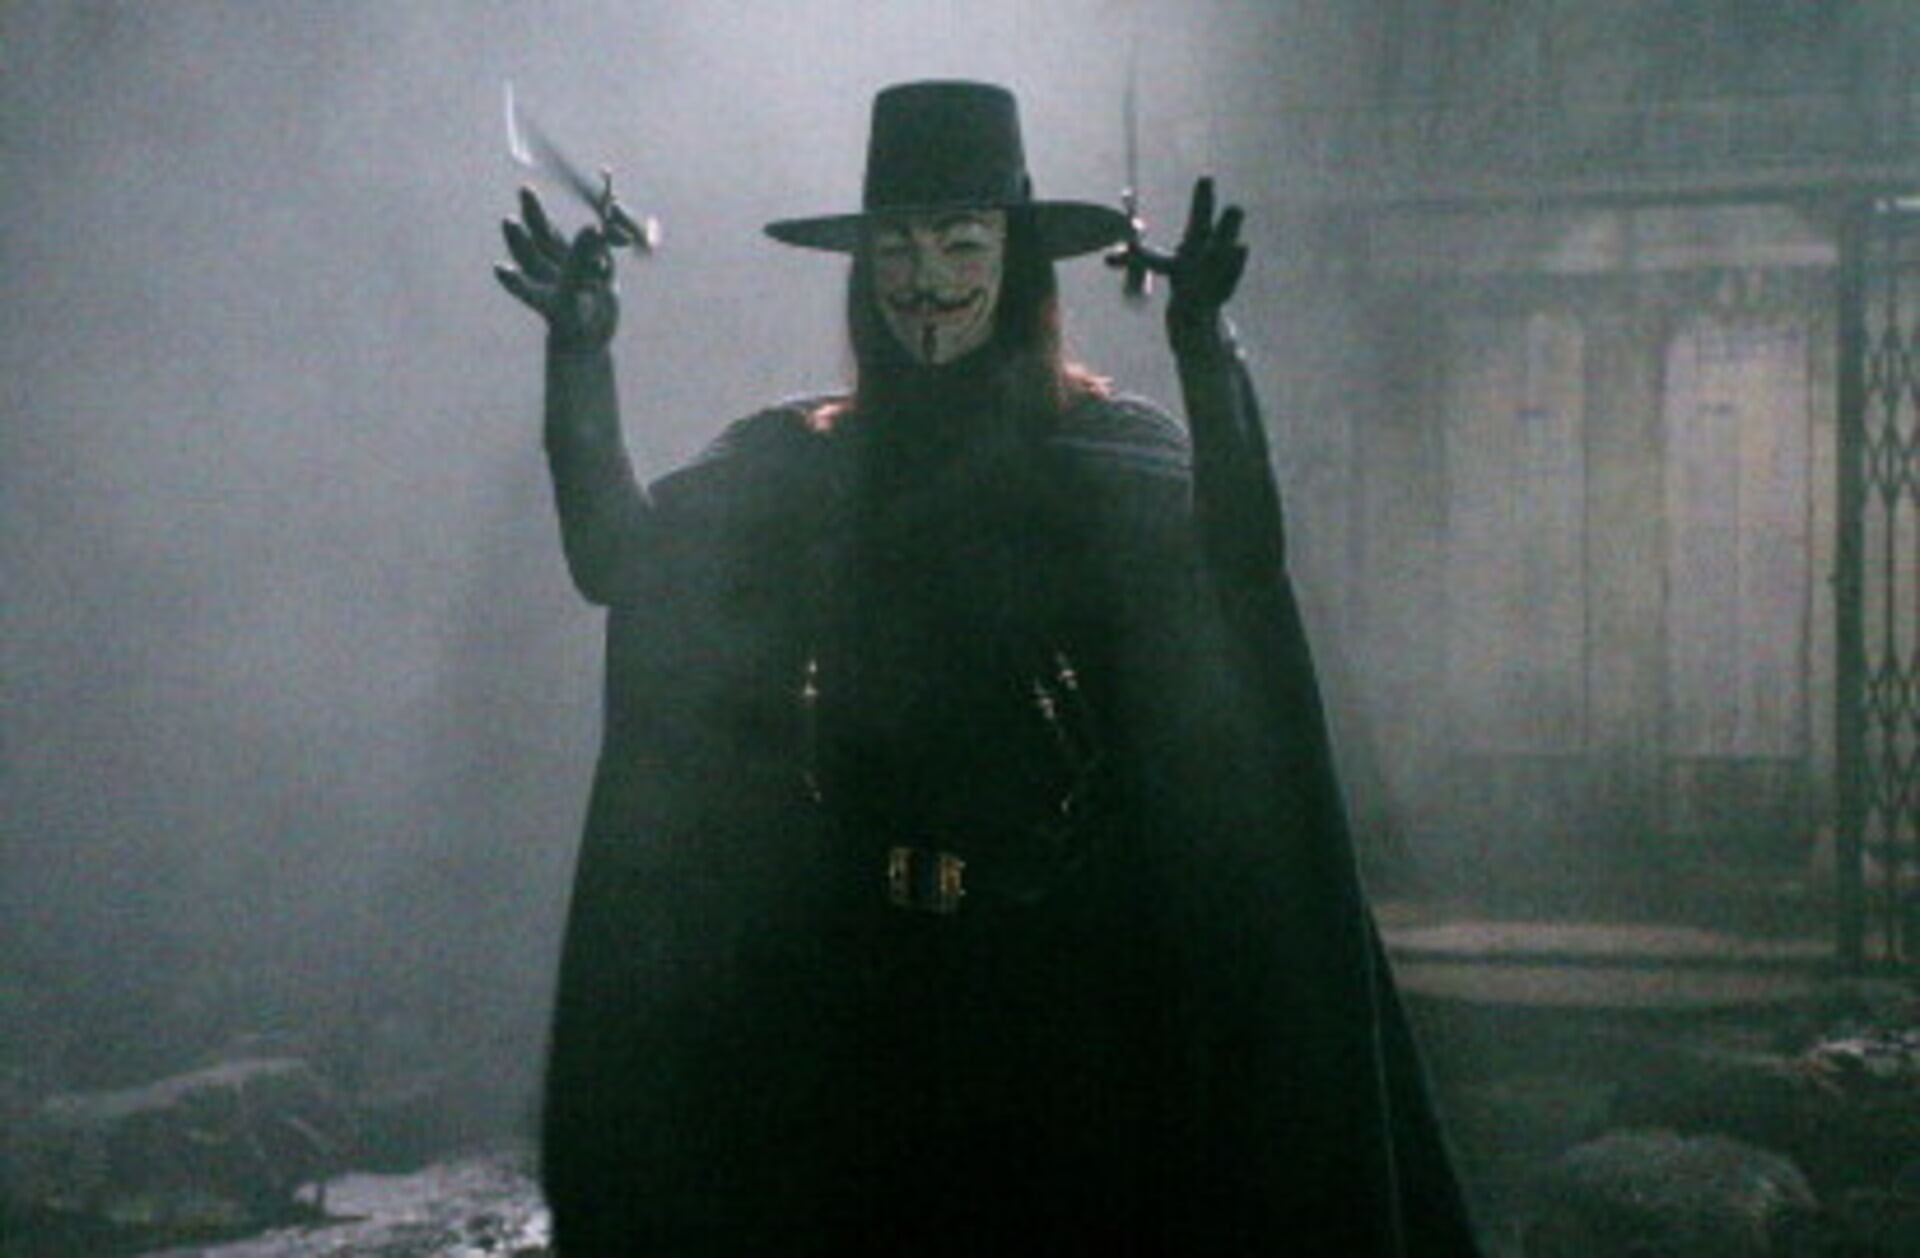 V for Vendetta - Image 29